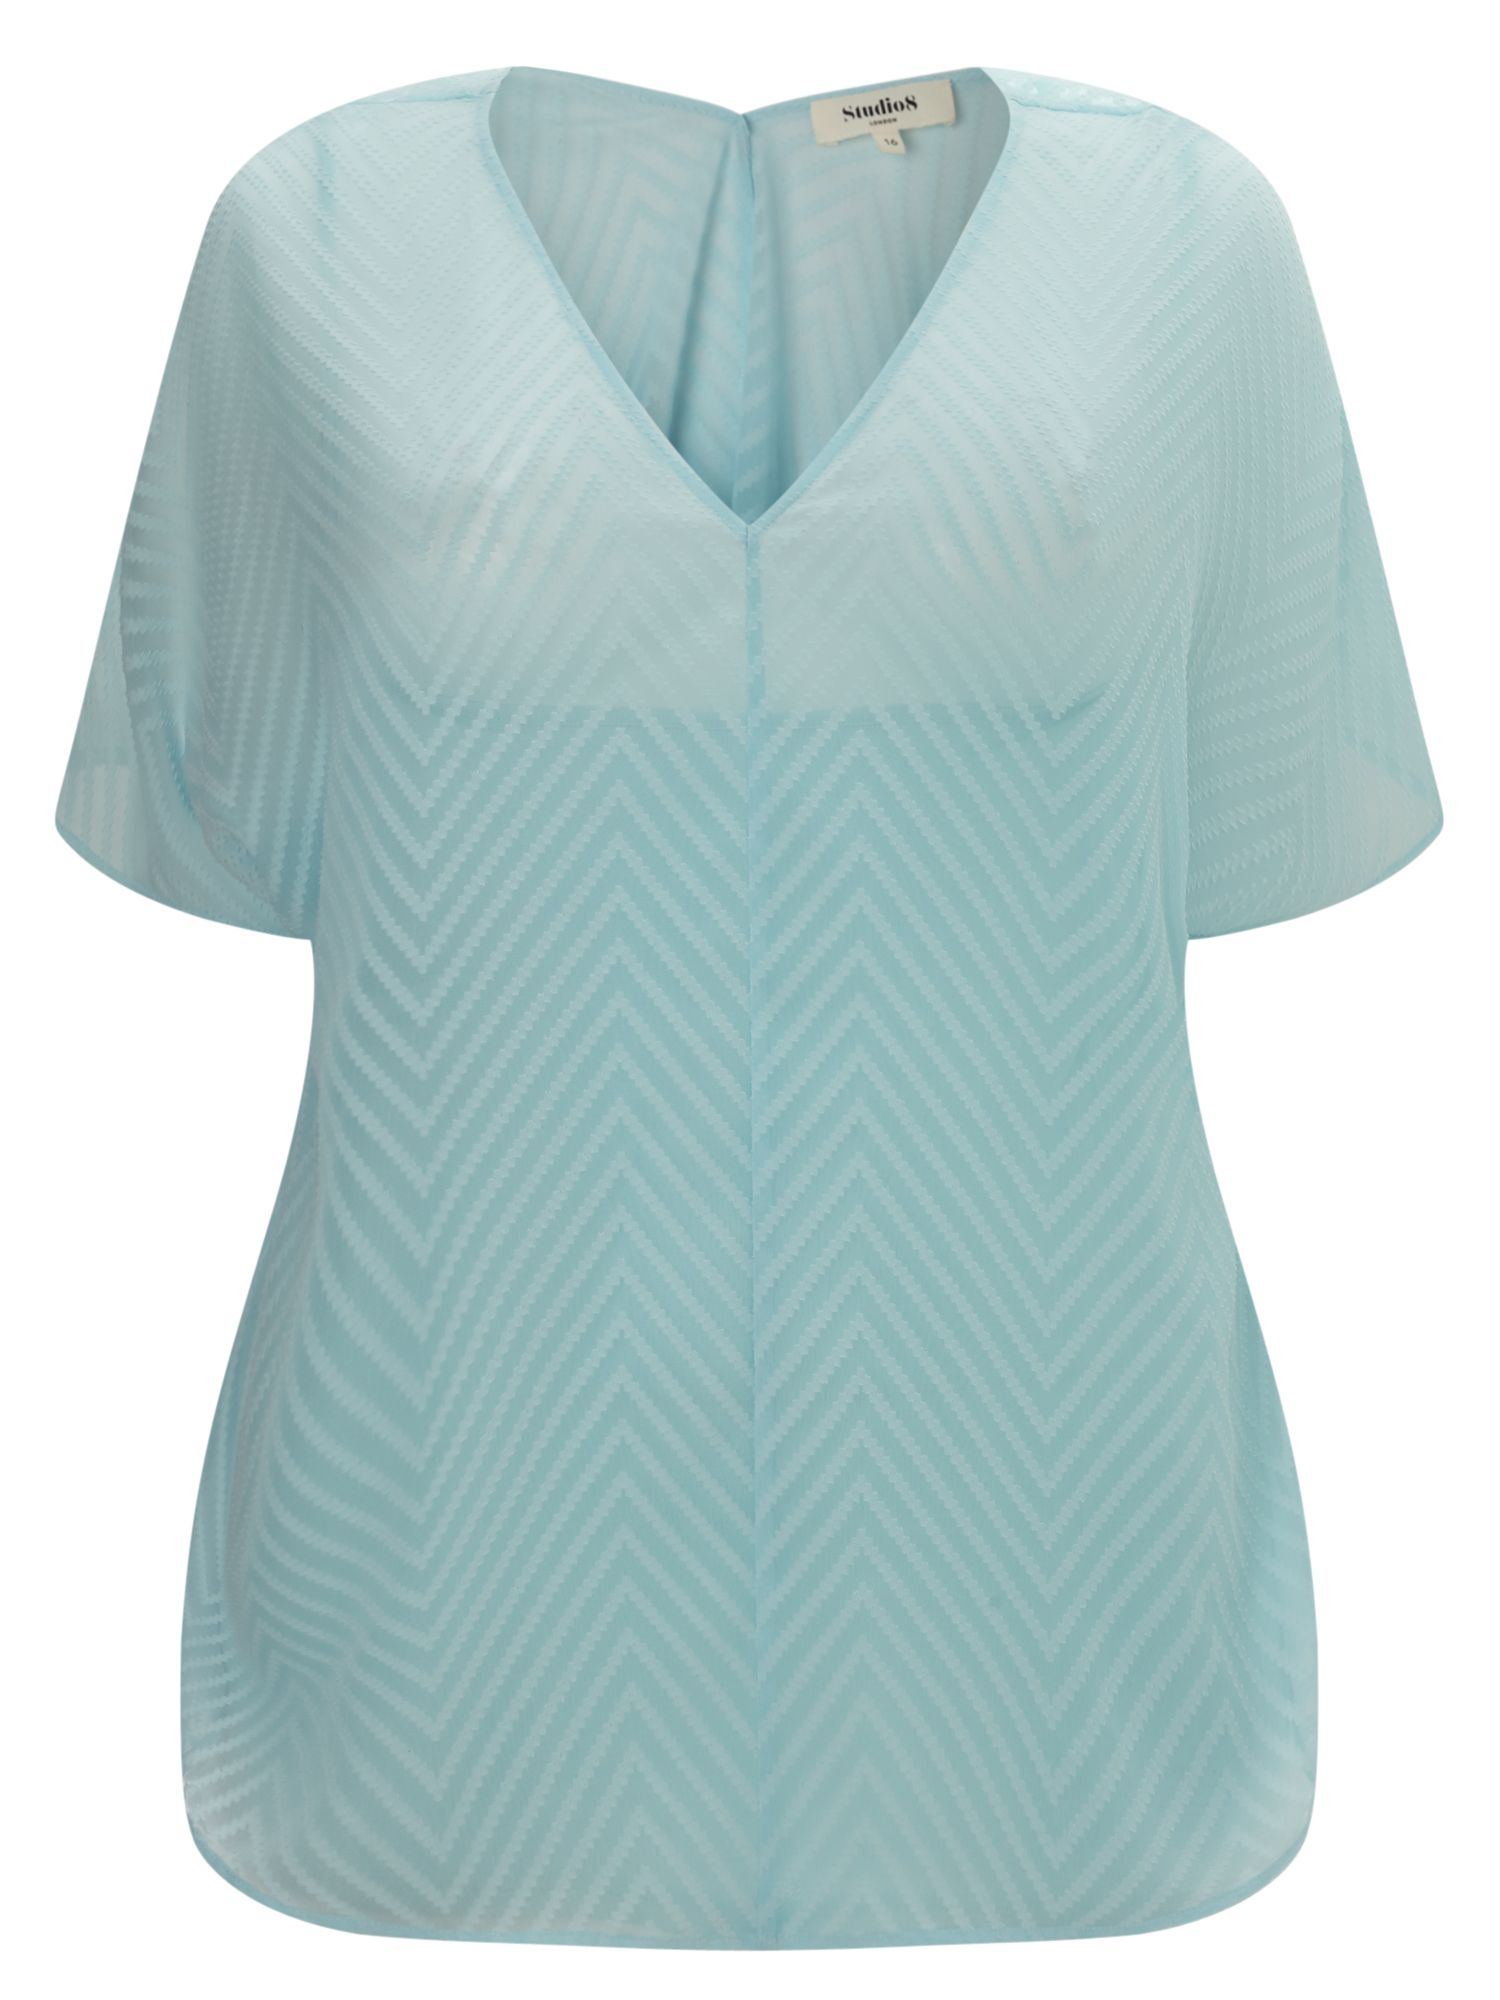 Studio 8 Harlow Top, Blue